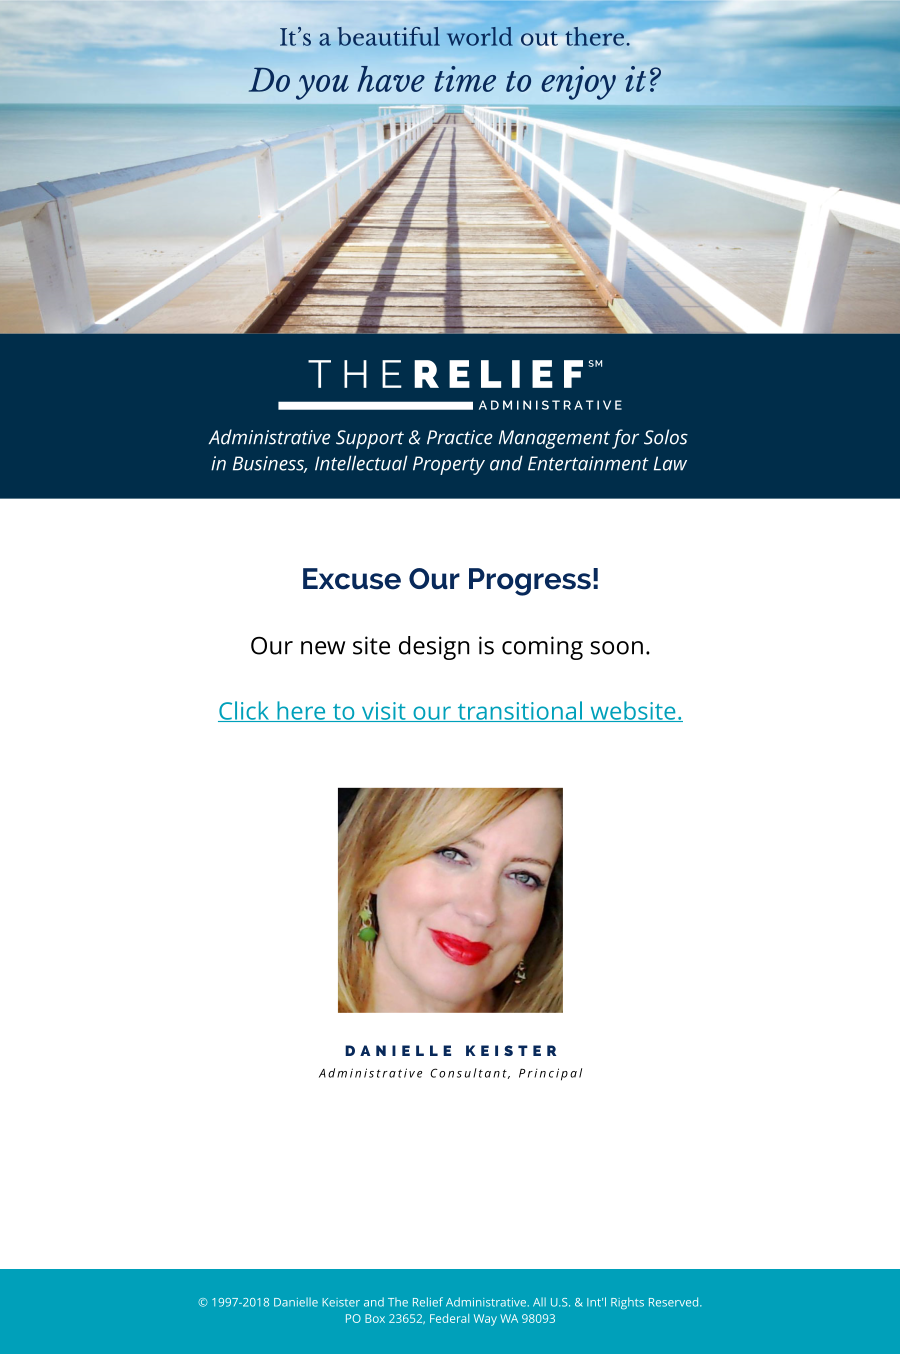 The Relief Administrative - Administrative Support and Practice Management for Solo Attorneys